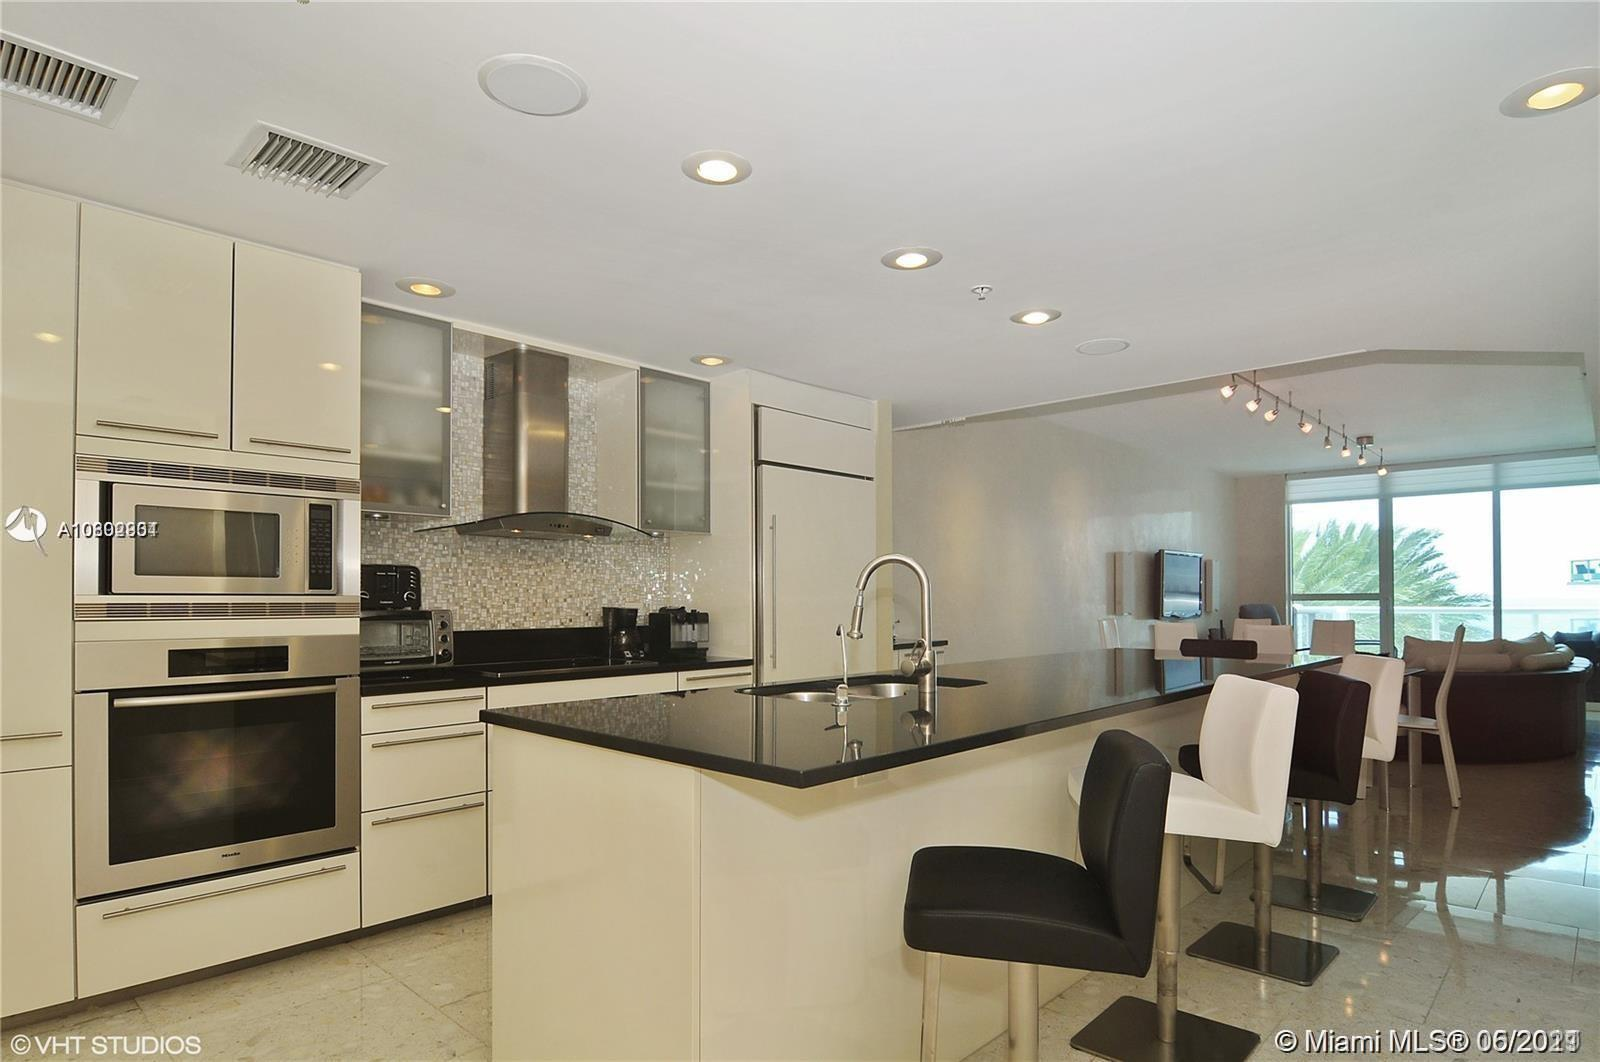 EXCELLENT DEAL *TURN KEY UNIT!! @ the heart of Miami Beach, 3 Beds, 3 Baths, 1661 Sq/Ft (LA by developer's floor plan), 2 Balconies, Private elevator, Private foyer, Exclusive European Miele Appliances, Marble floors, Smart technology System. Come and see this Beautiful unit and enjoy all the amenities offered by Mosaic Building, Fitness center, Business Center, Media Room and a lot more. The unit is located in front of the beach (Just Steps away), Great Location, minutes away from Downtown Miami, Brickell, Bal Harbour, Aventura